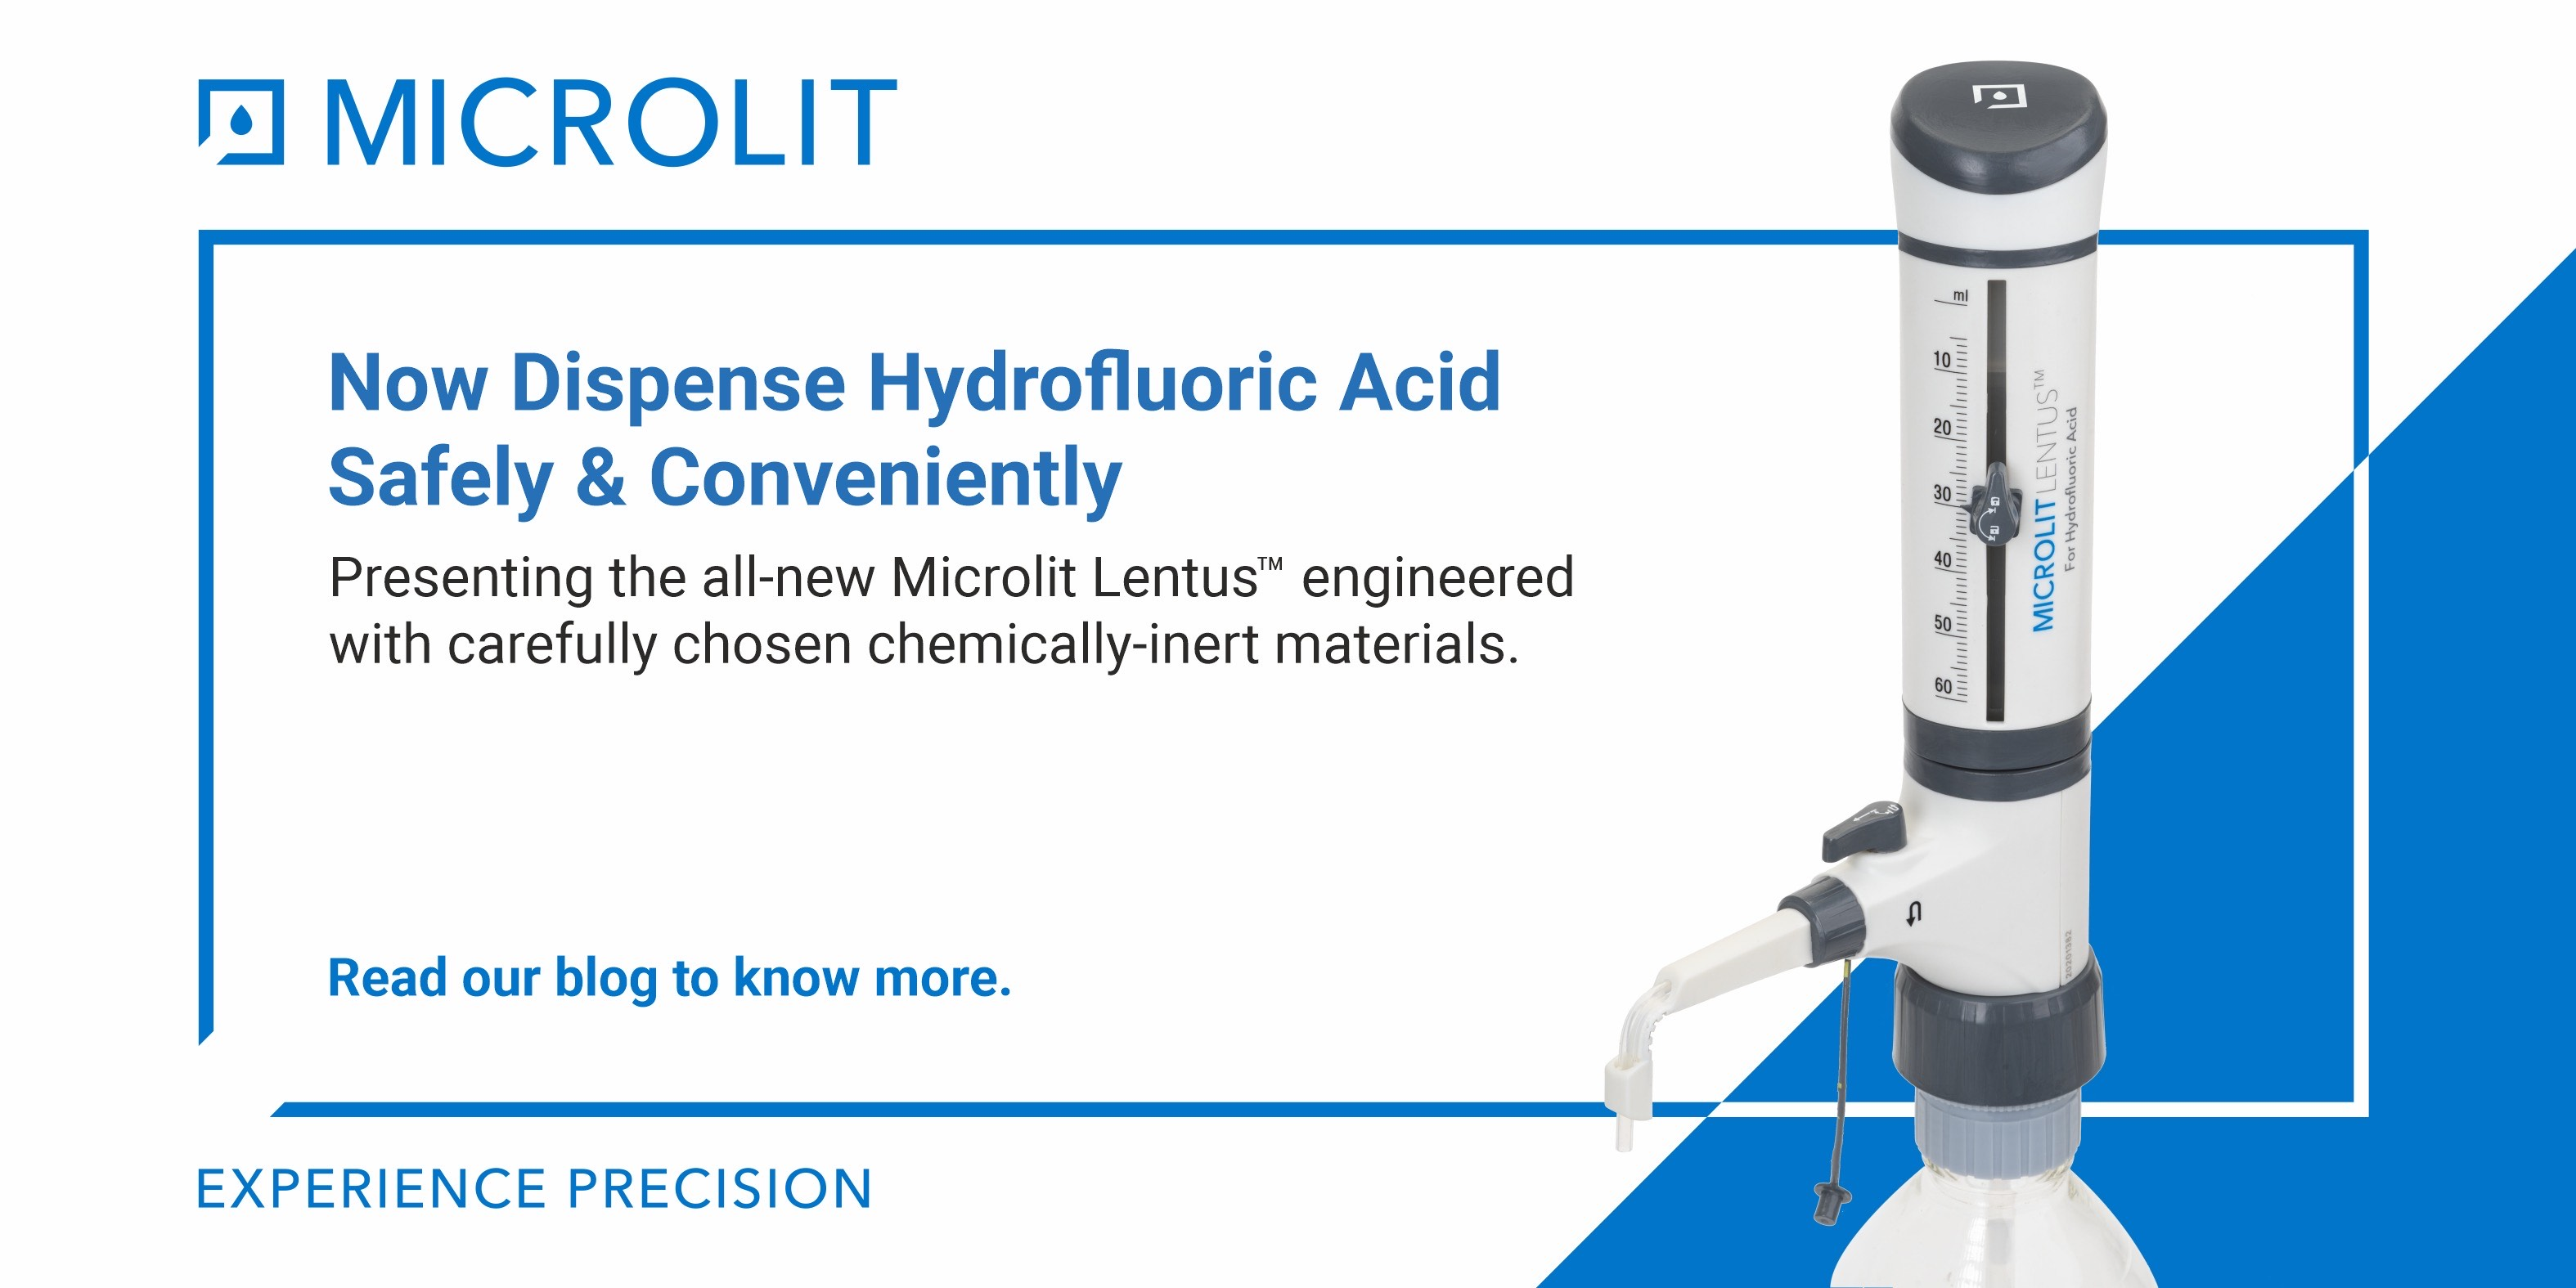 Dispense Hydrofluoric Acid Fearlessly with the New Microlit Lentus<sup>TM</sup>